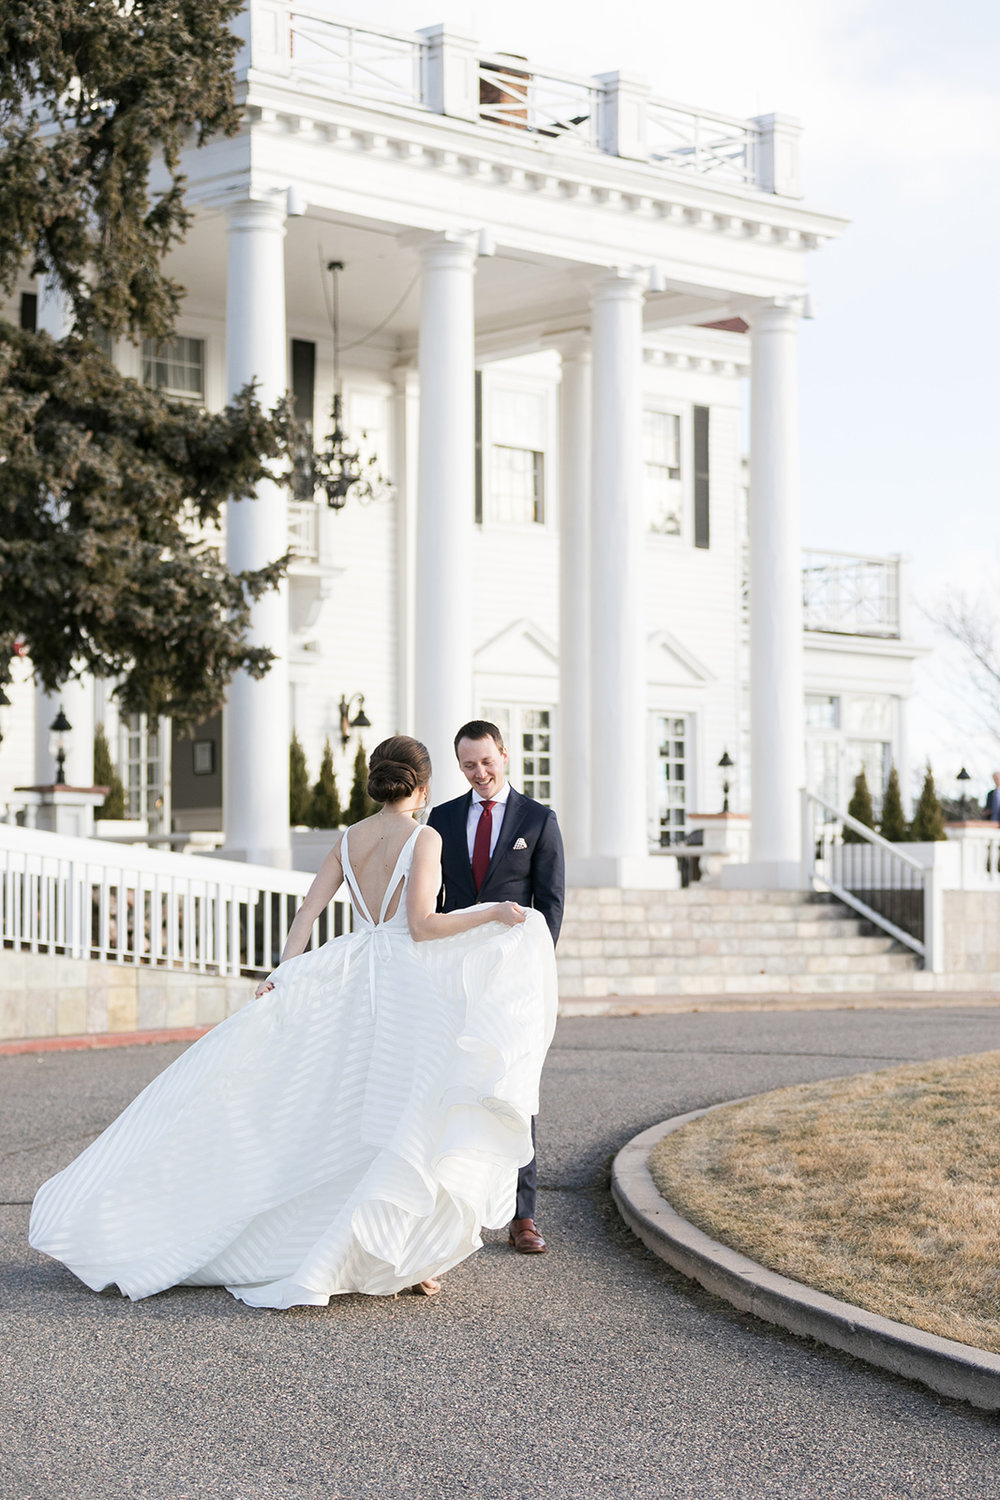 Brad and Elizabeth - Amy Caroline Photography-1600.jpg